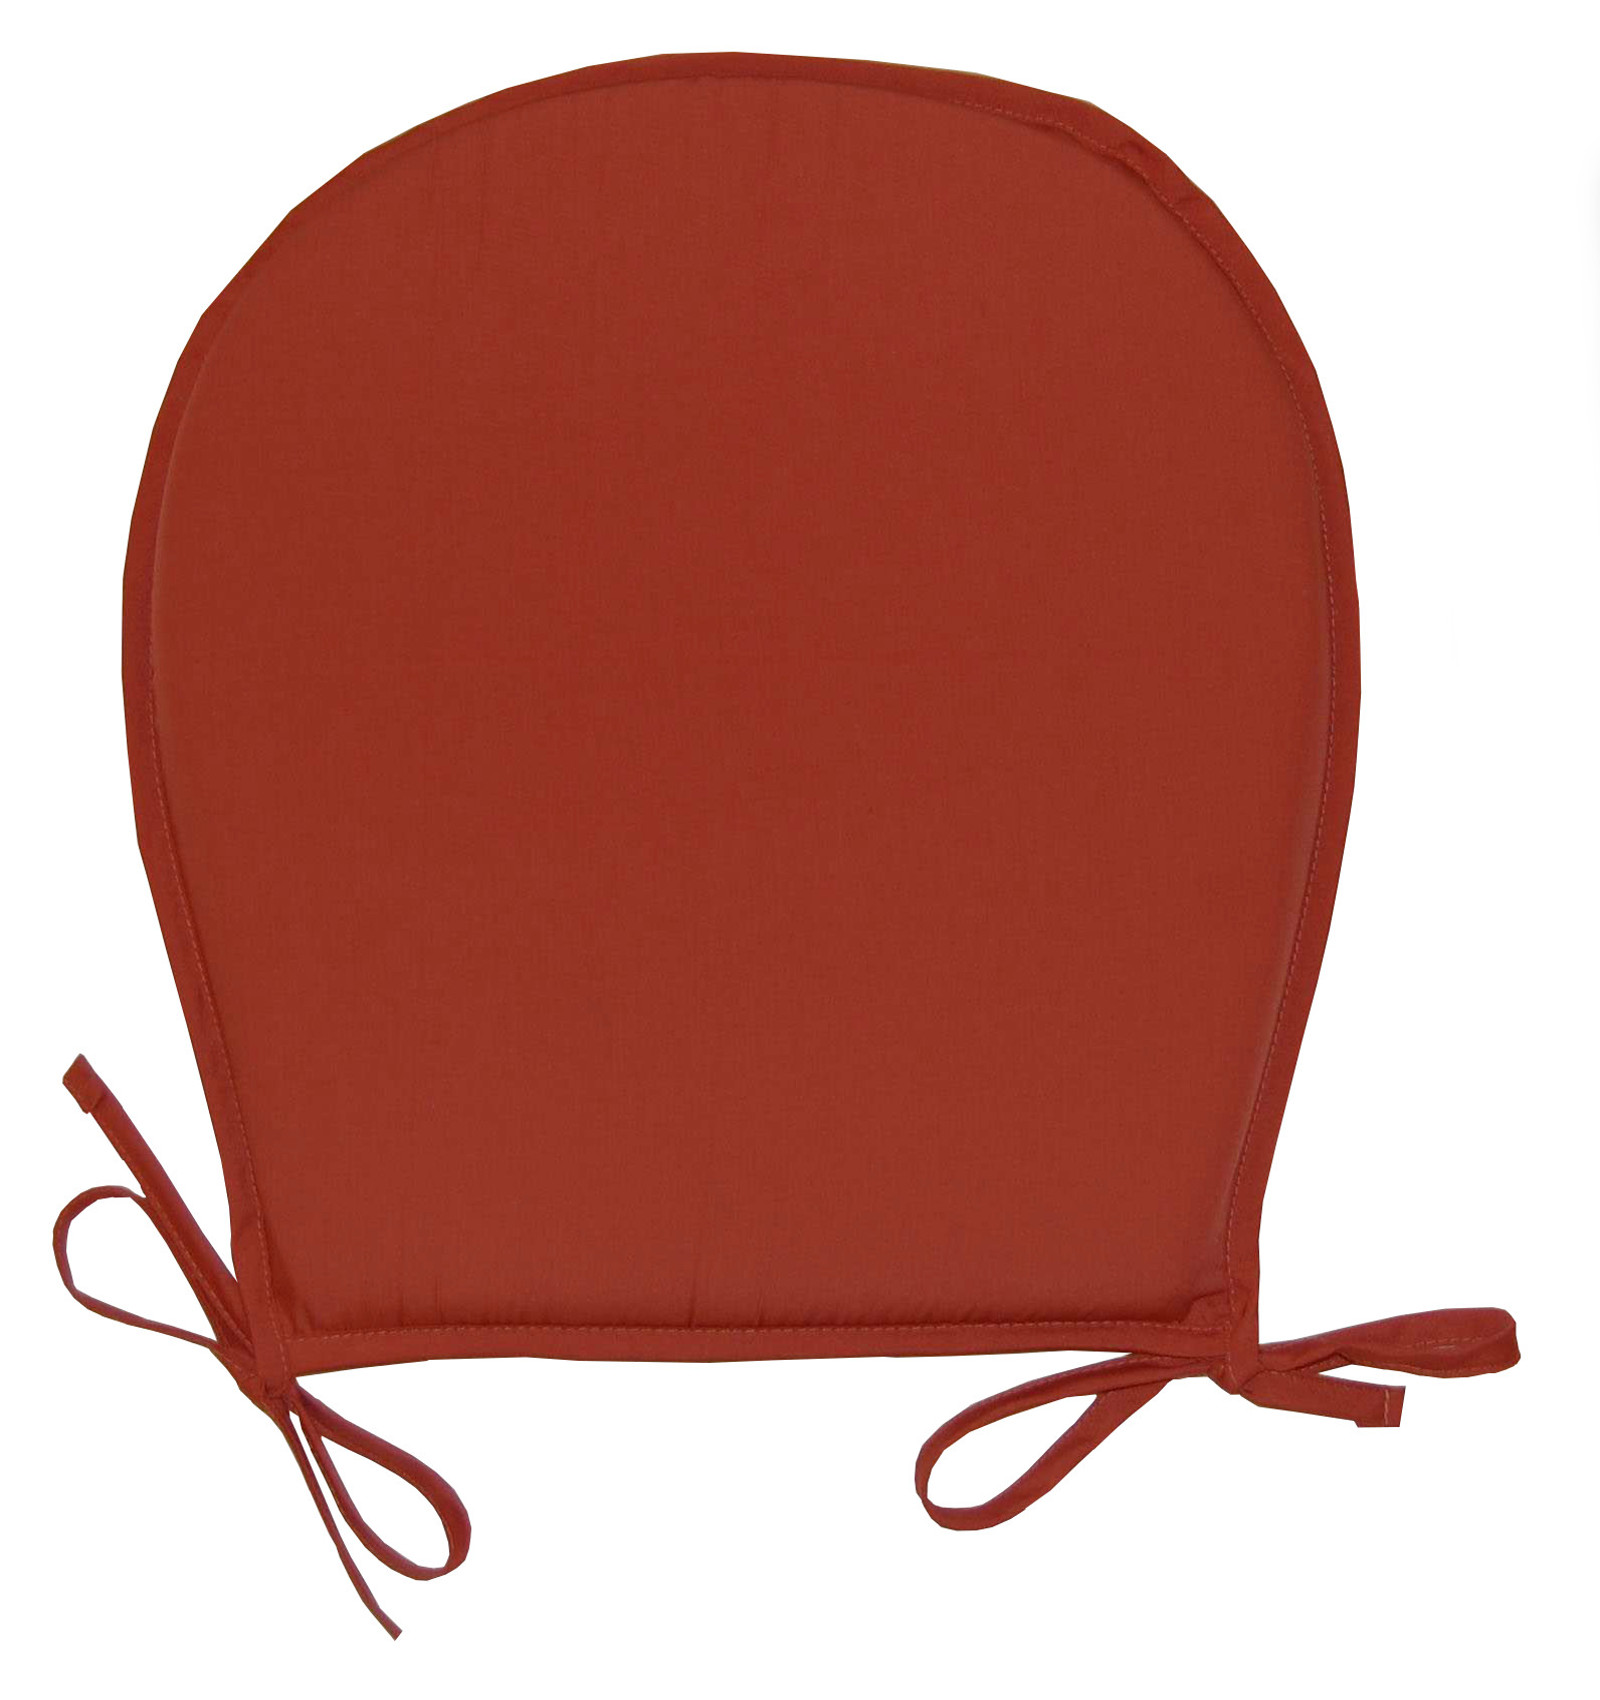 SEAT PAD  Top Kitchen Chair Pads 1592 x 2000   207 kB   jpegKitchen Chairs  Seat Pads For Kitchen Chairs. Round Seat Cushions For Dining Room Chairs. Home Design Ideas